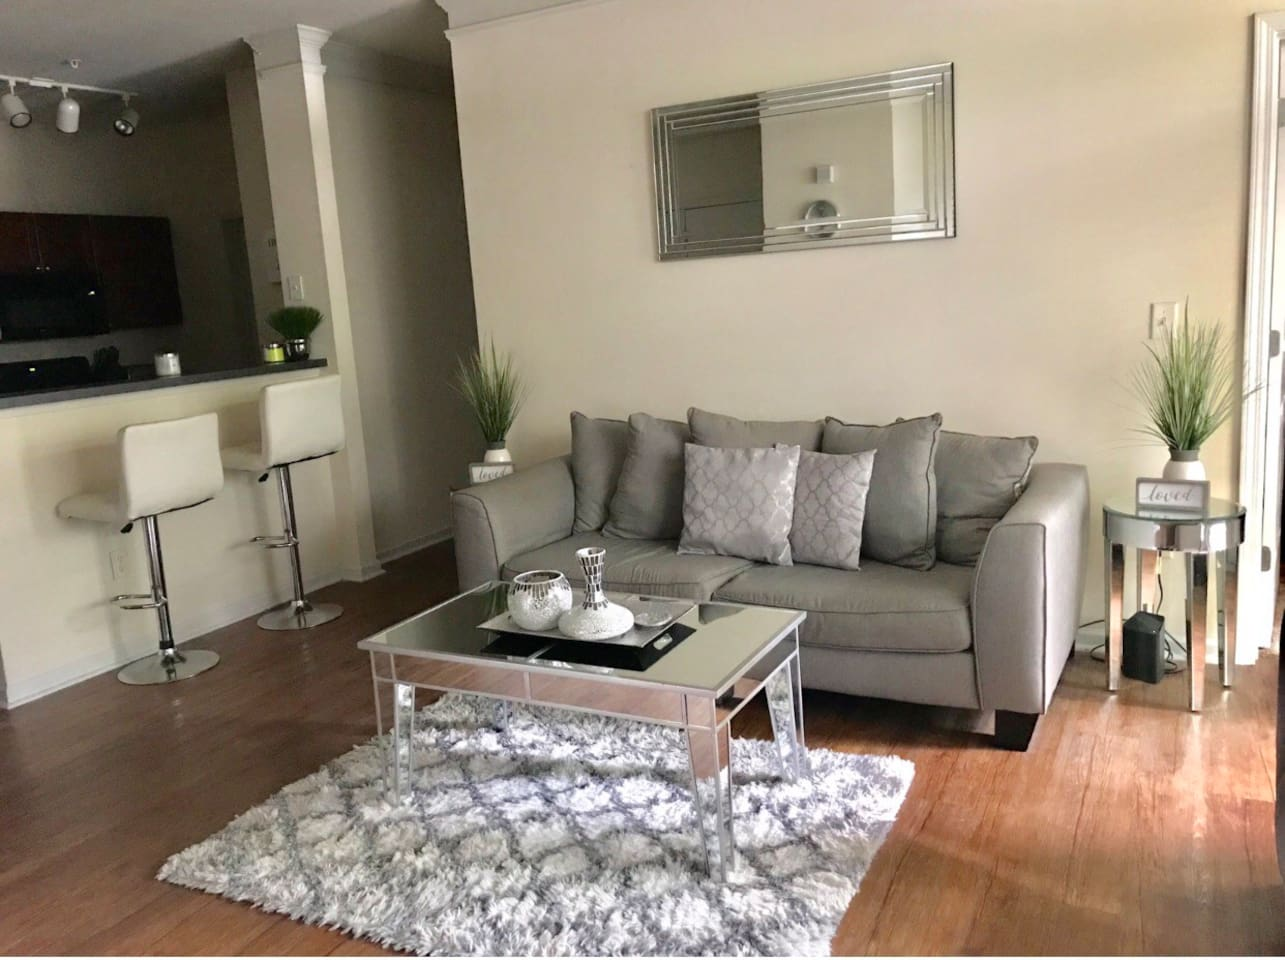 This is the very spacious and clean living room you will see upon entering.